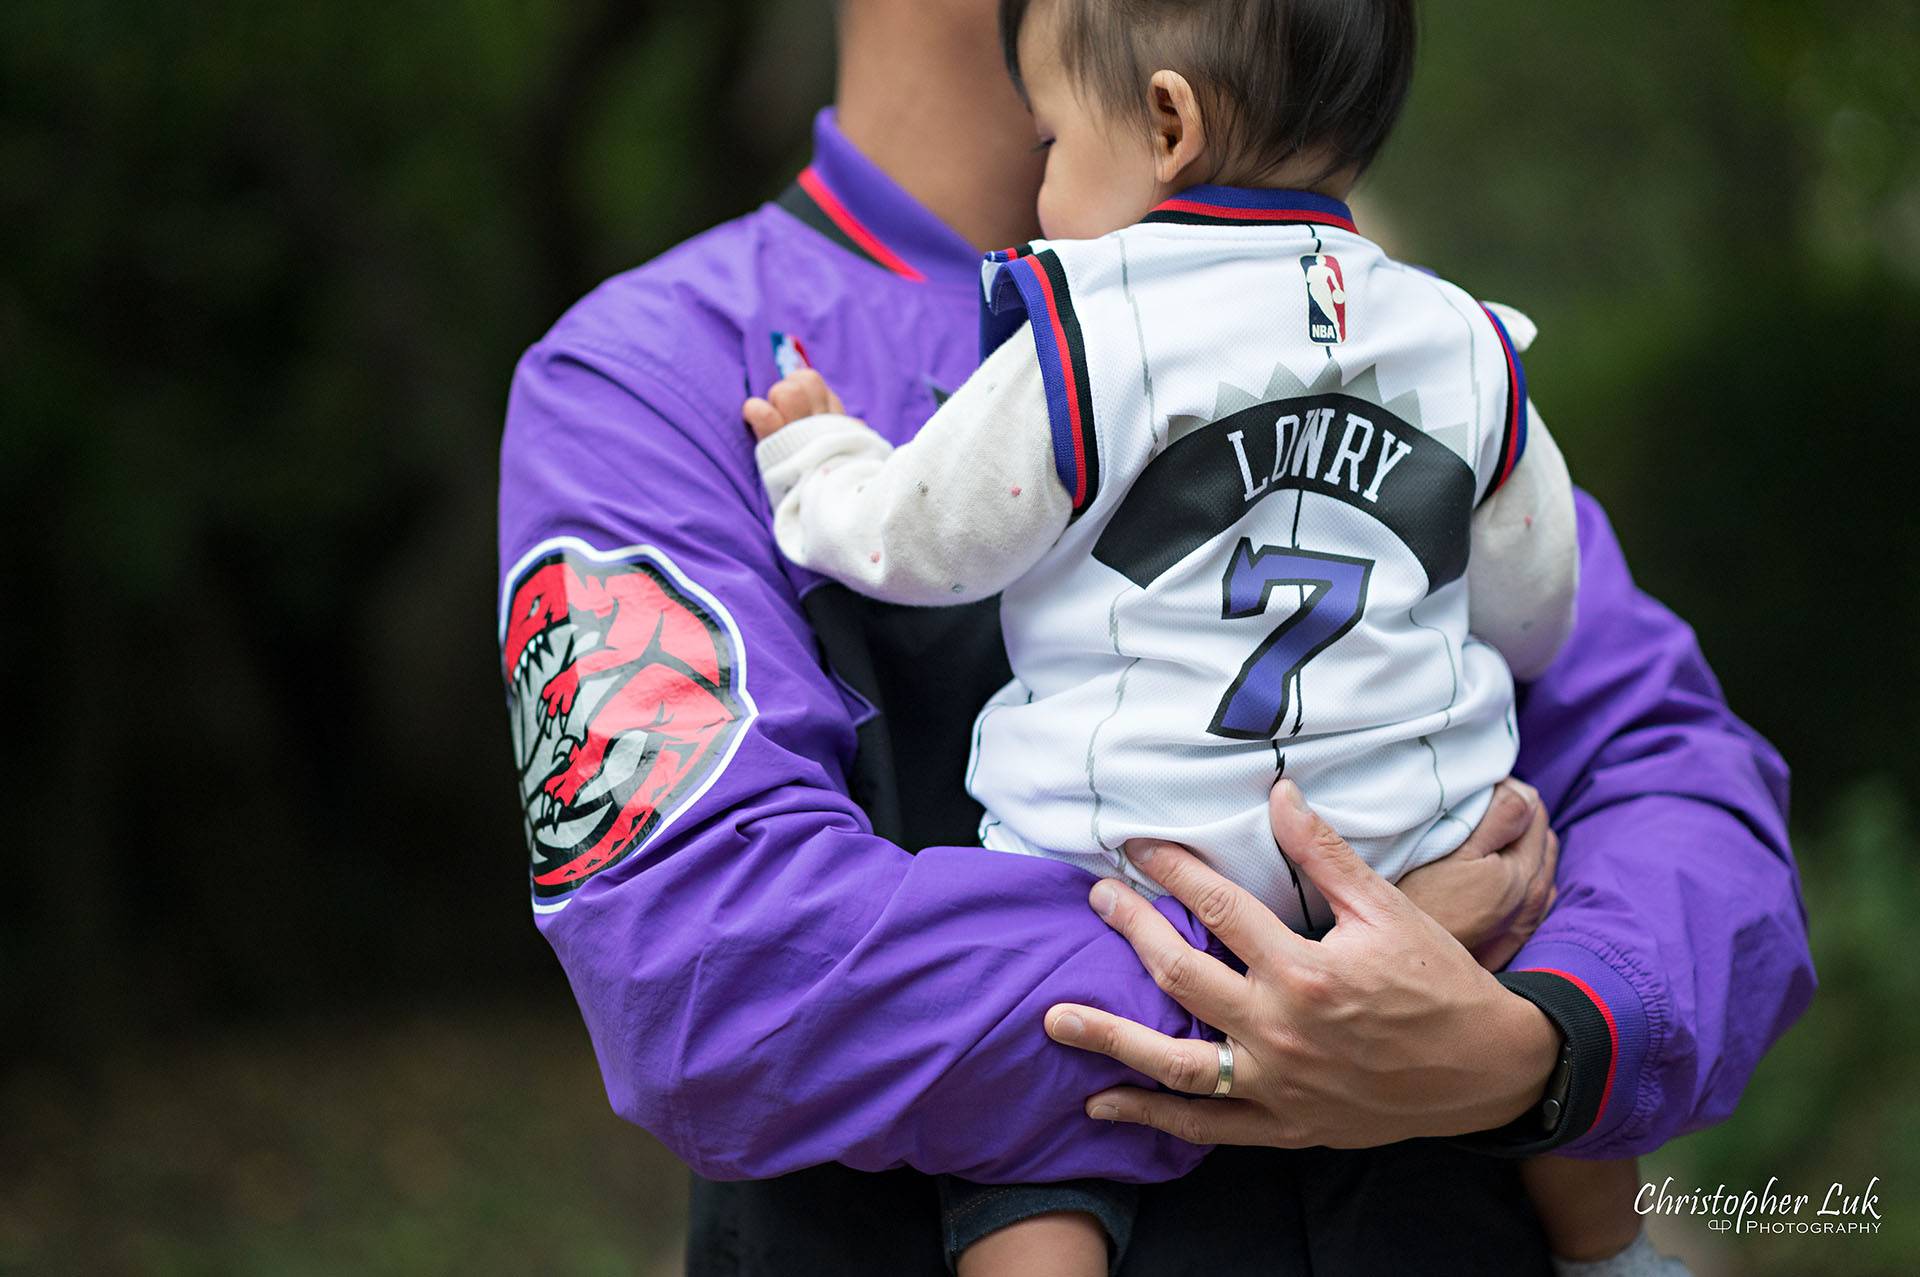 Christopher Luk Toronto Markham Family Wedding Photographer Baby Girl Natural Candid Photojournalistic Mom Dad Mother Father Motherhood Fatherhood Daughter Landscape Together Toronto Raptors We the North Over Everything Kyle Lowry 7 Klow7 Jersey Jacket Detail